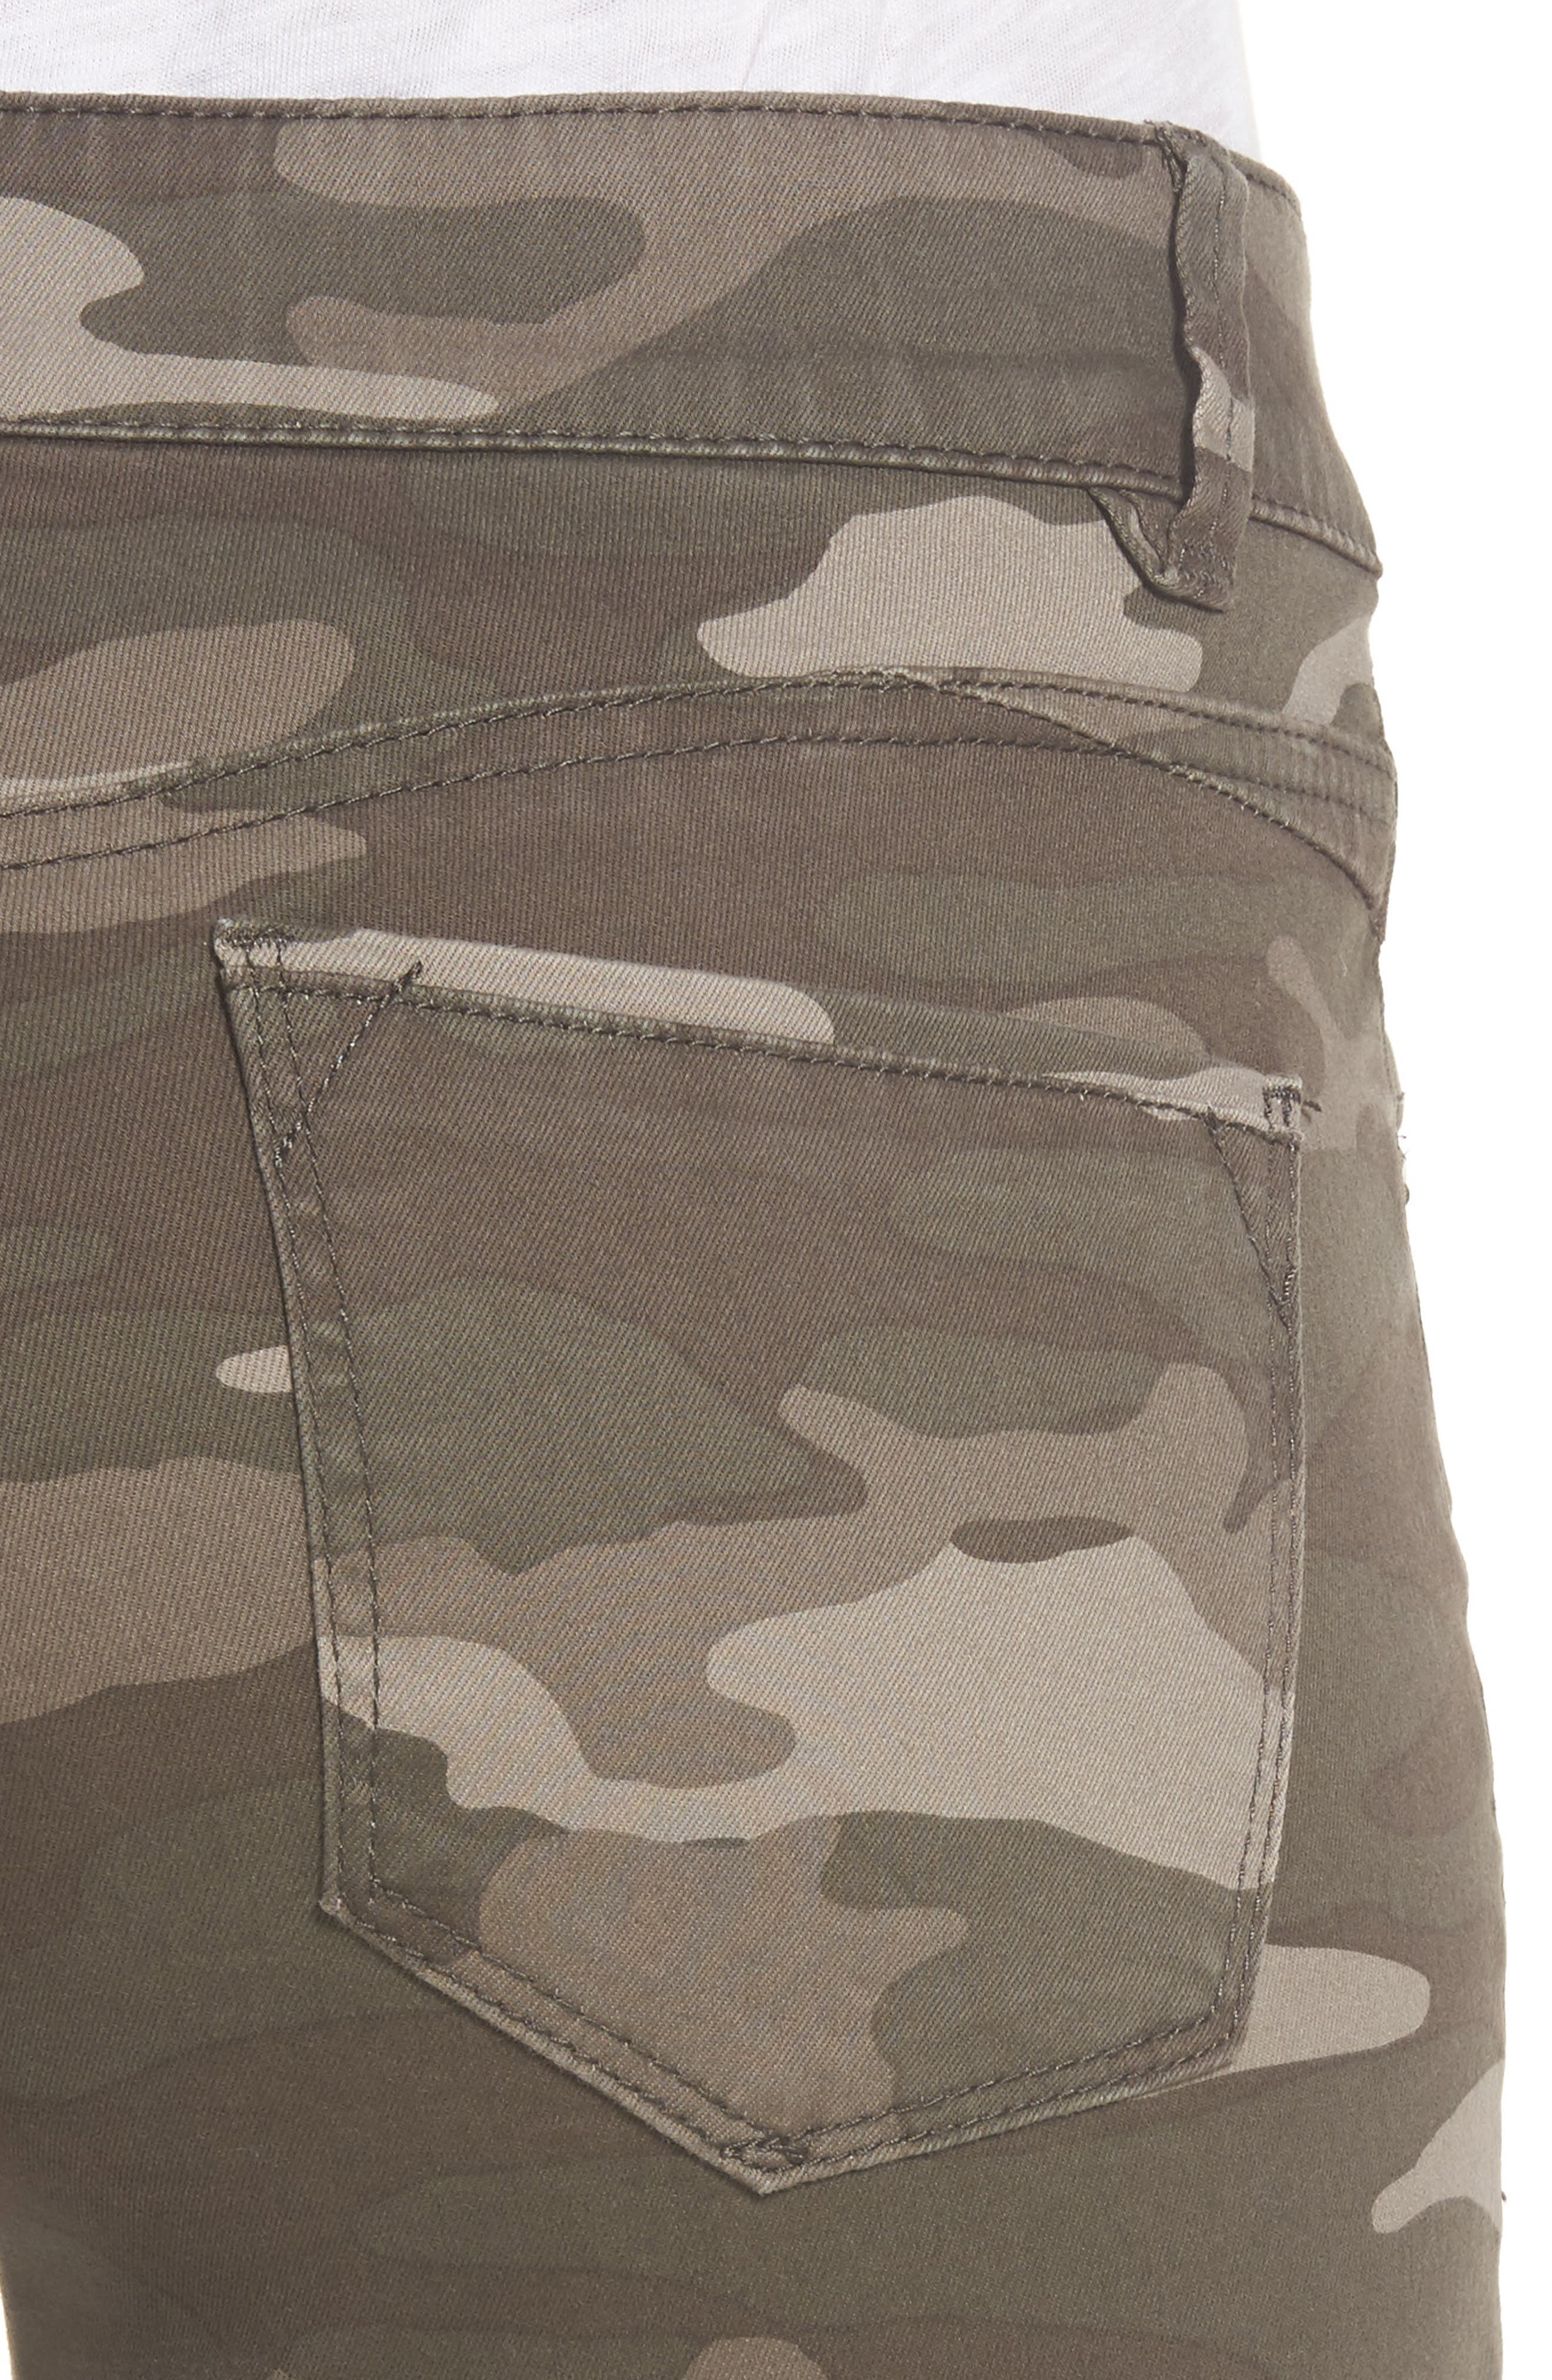 Ab-solution Camo Stretch Ankle Skinny Jeans,                             Alternate thumbnail 4, color,                             201